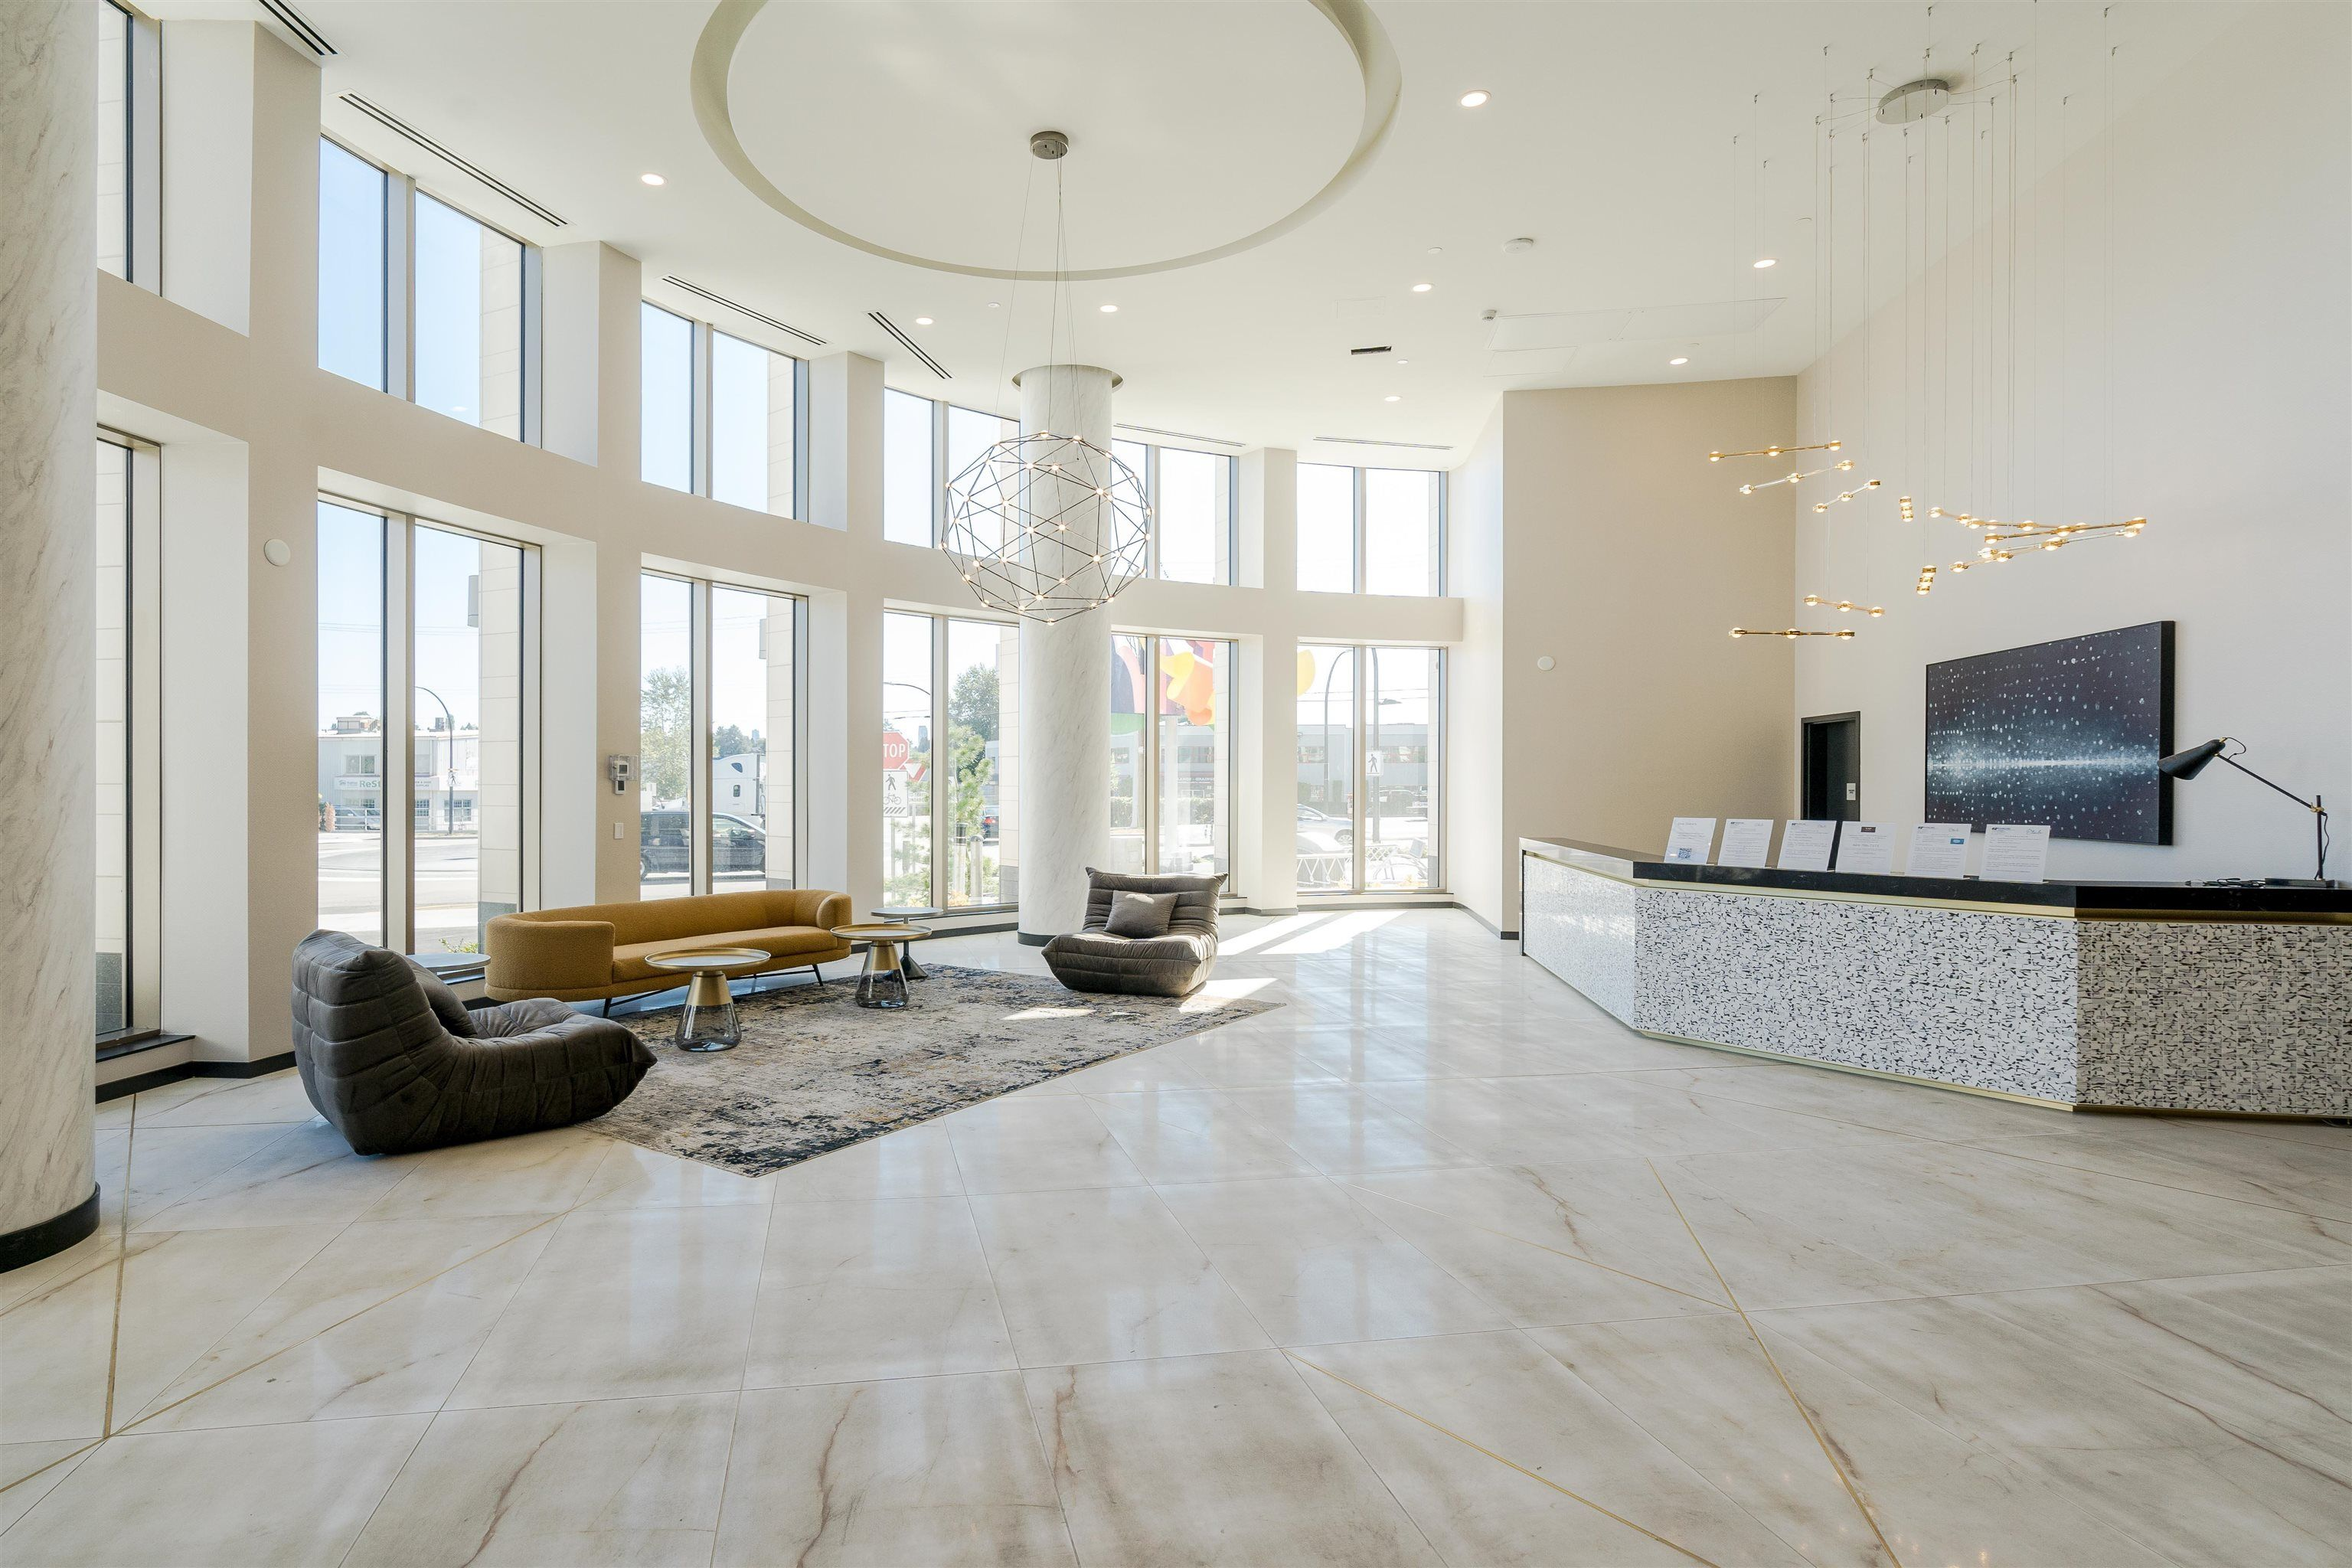 """Main Photo: 708 5311 GORING Street in Burnaby: Brentwood Park Condo for sale in """"ETOILE"""" (Burnaby North)  : MLS®# R2613723"""